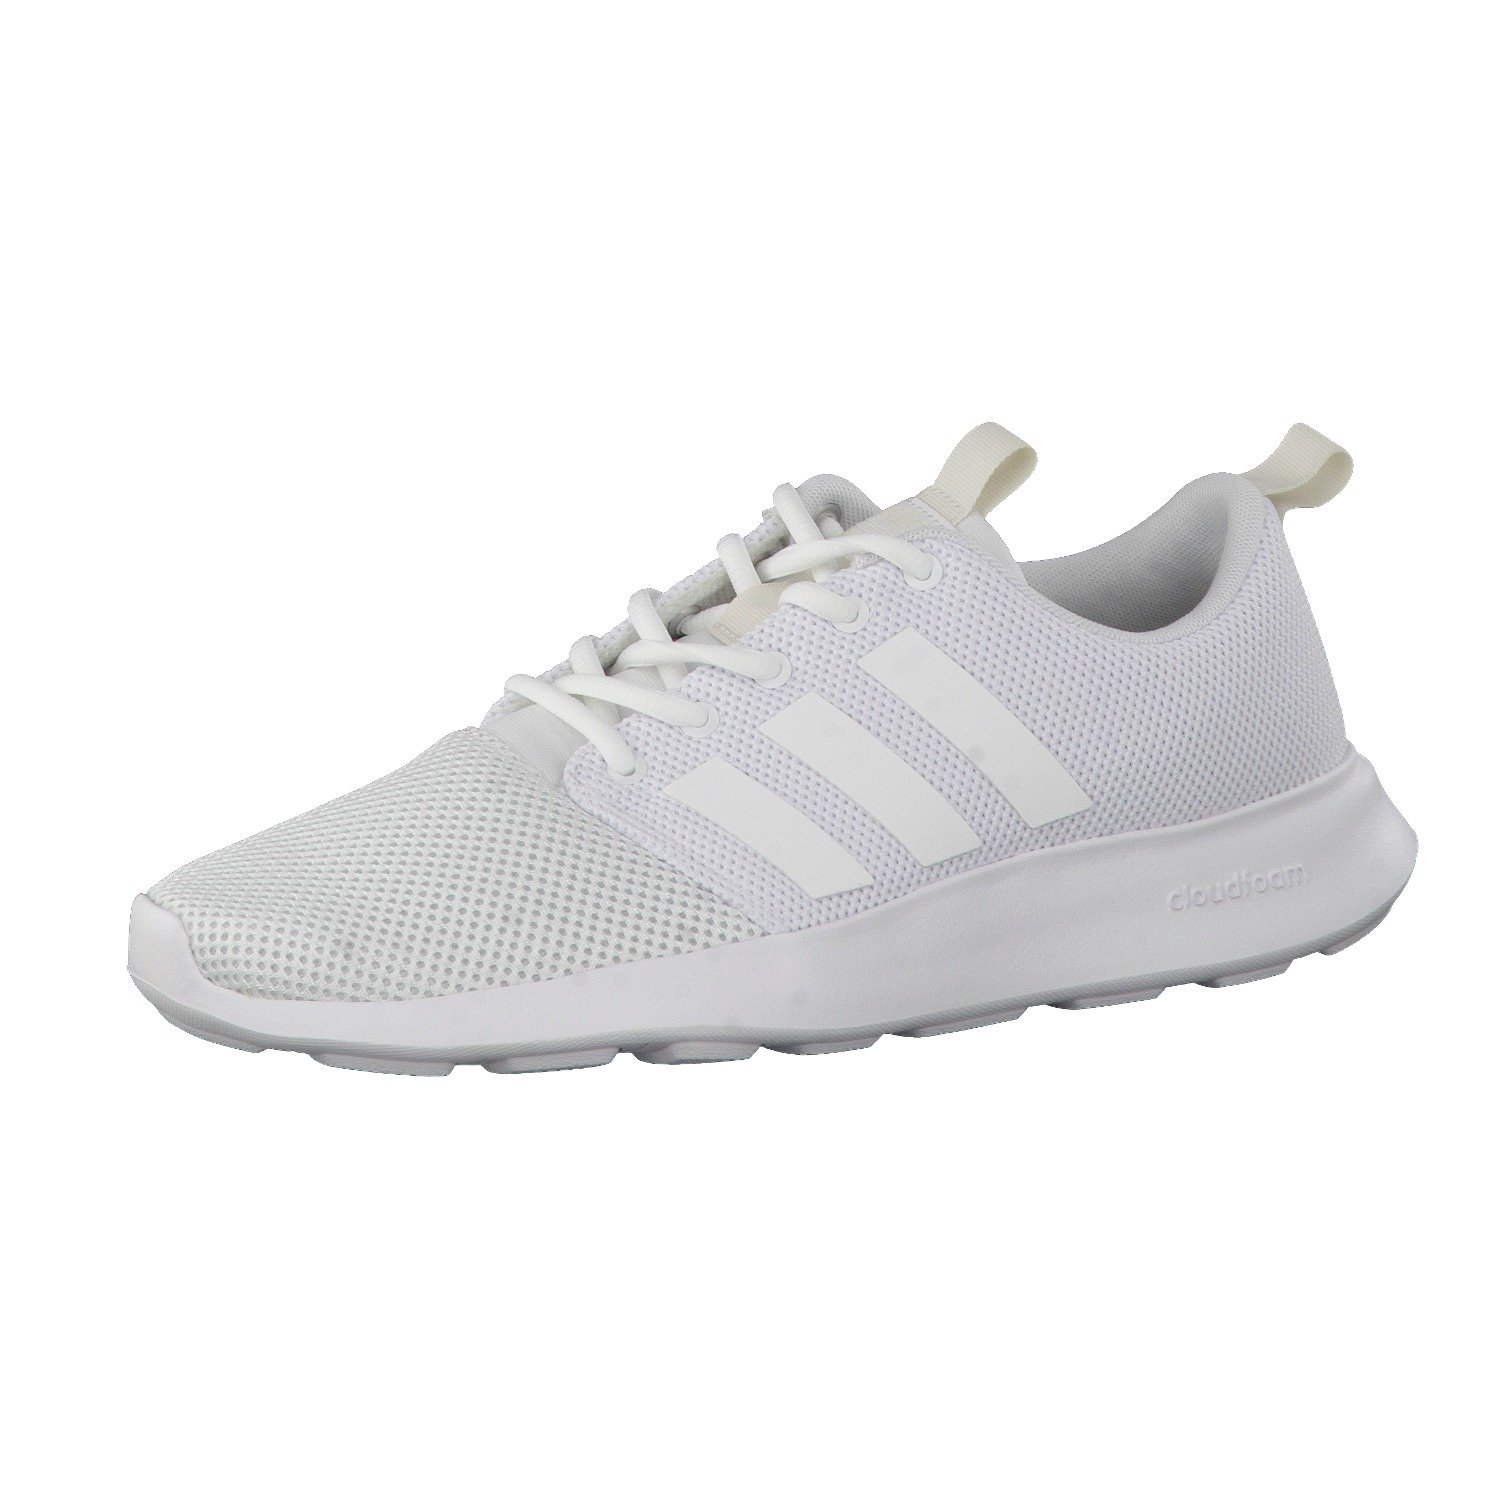 adidas Men's Cloudfoam Swift Racer Gymnastics Shoes: Amazon